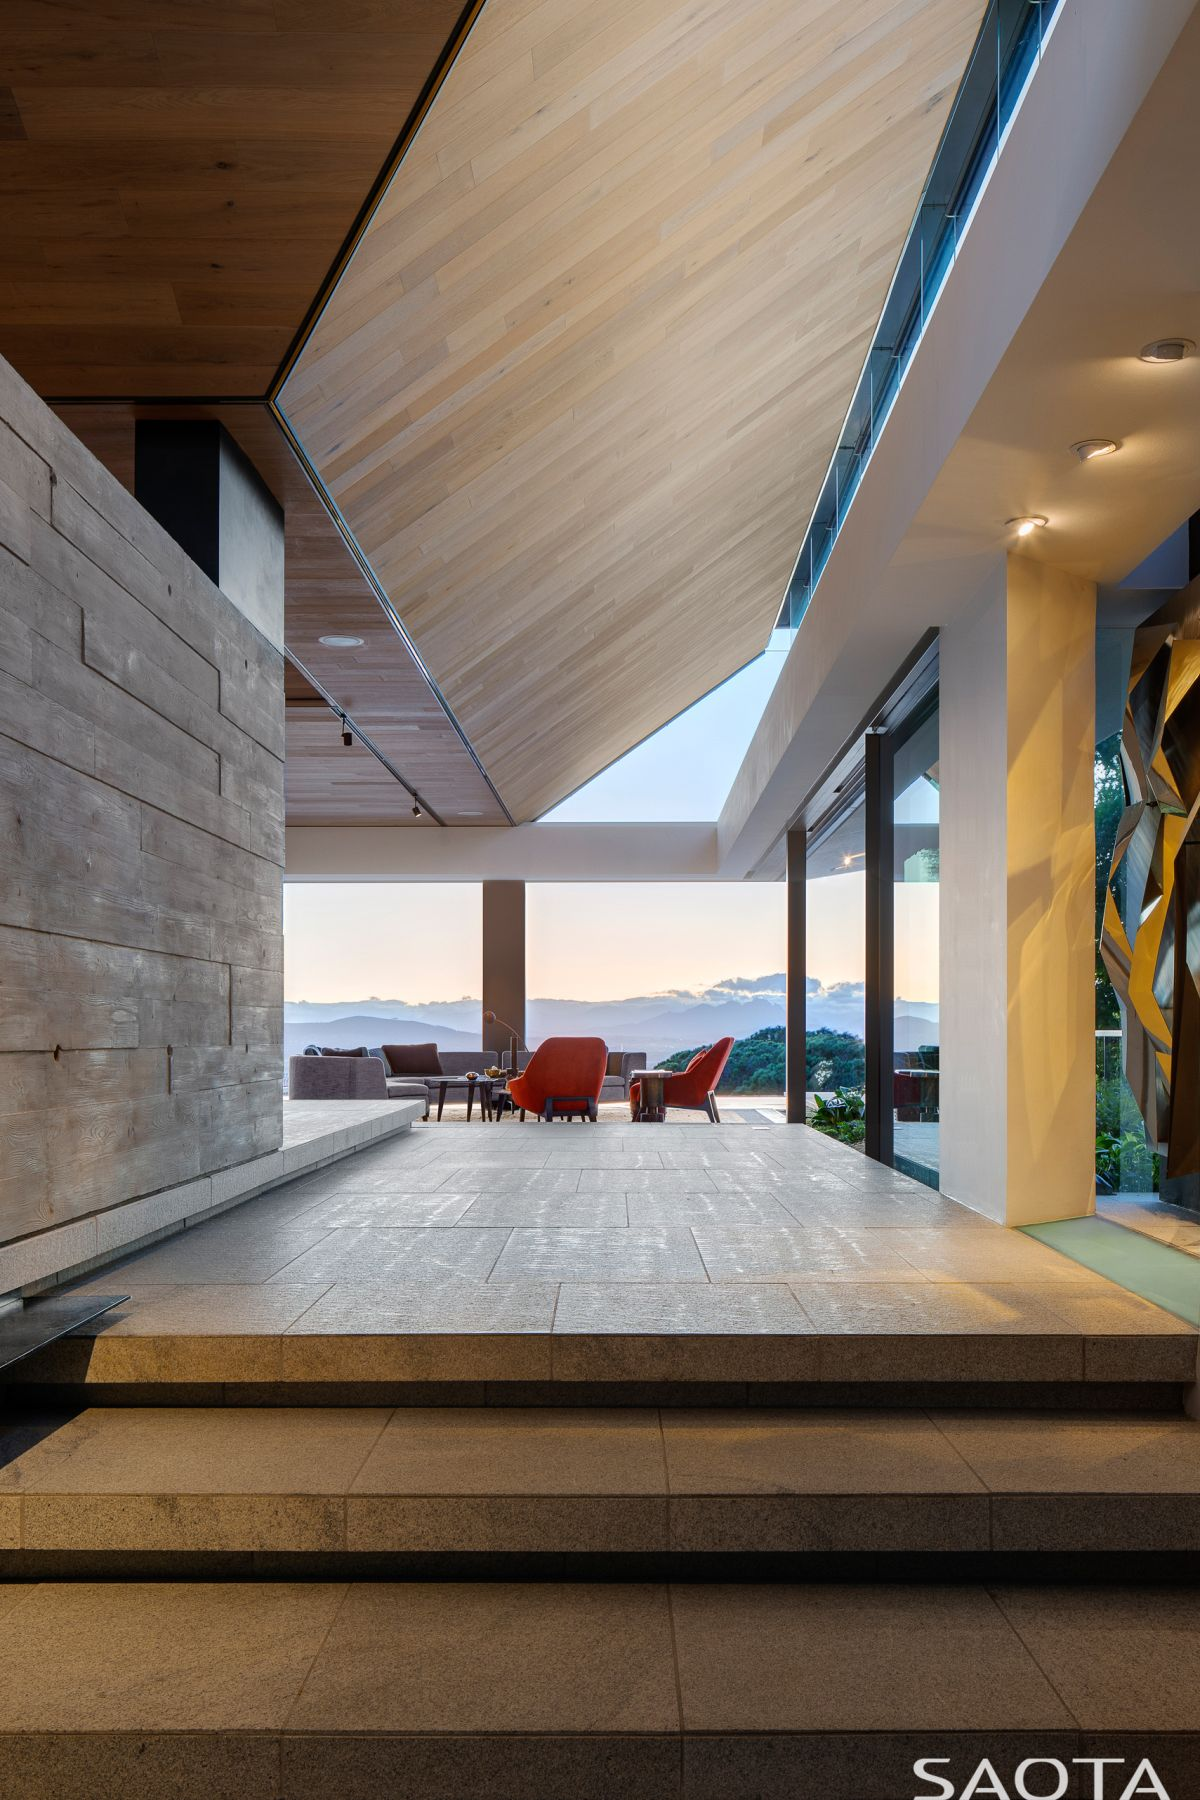 In order to allow the focus to remain of the views and the connection between the house and its surroundings, the color palette is kept simple